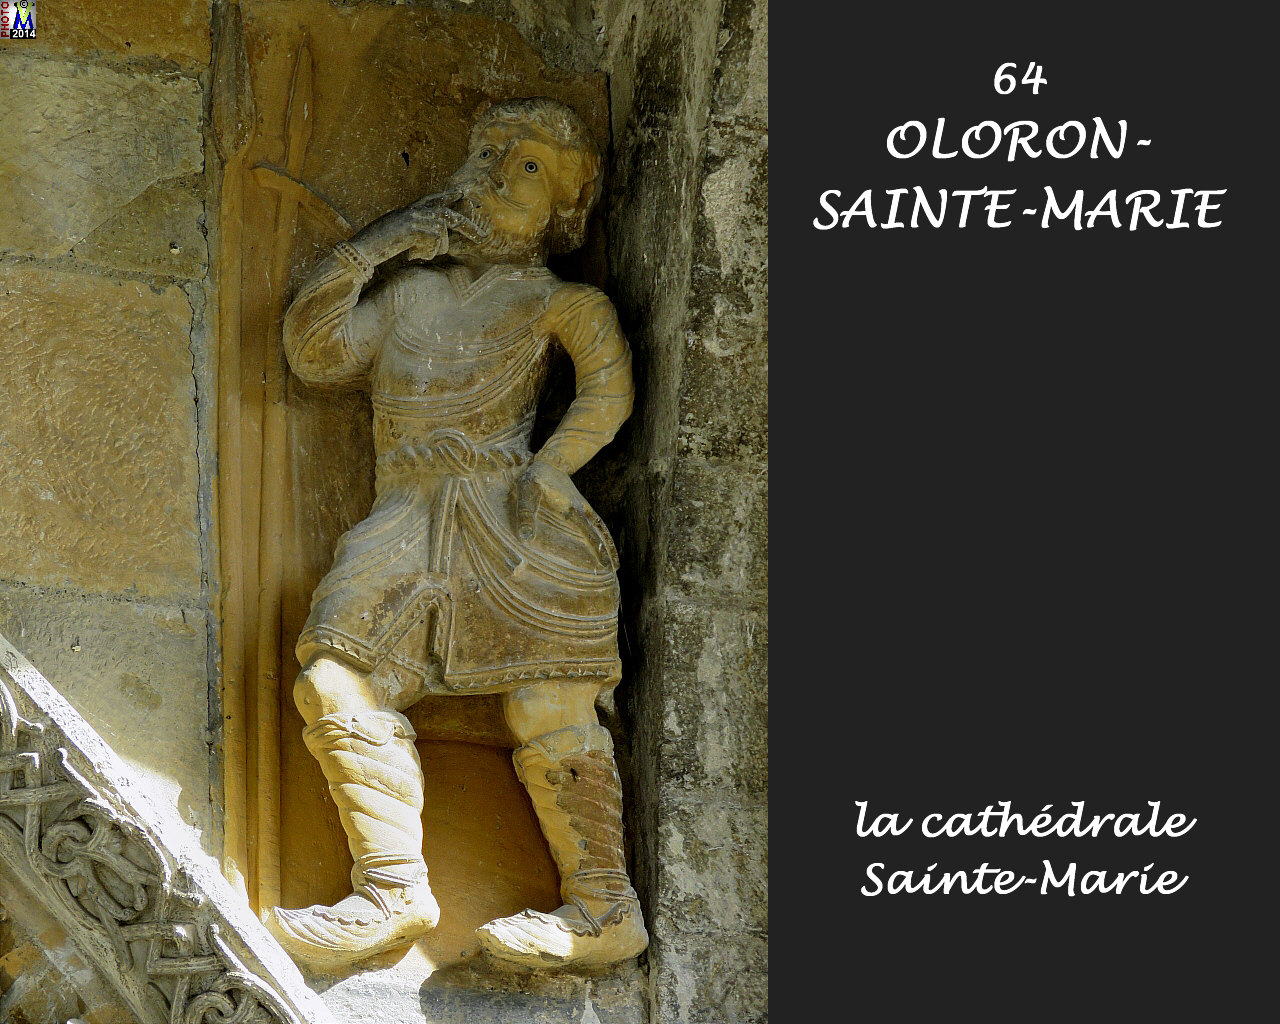 64OLORON-STE-MARIE_cathedrale_132.jpg